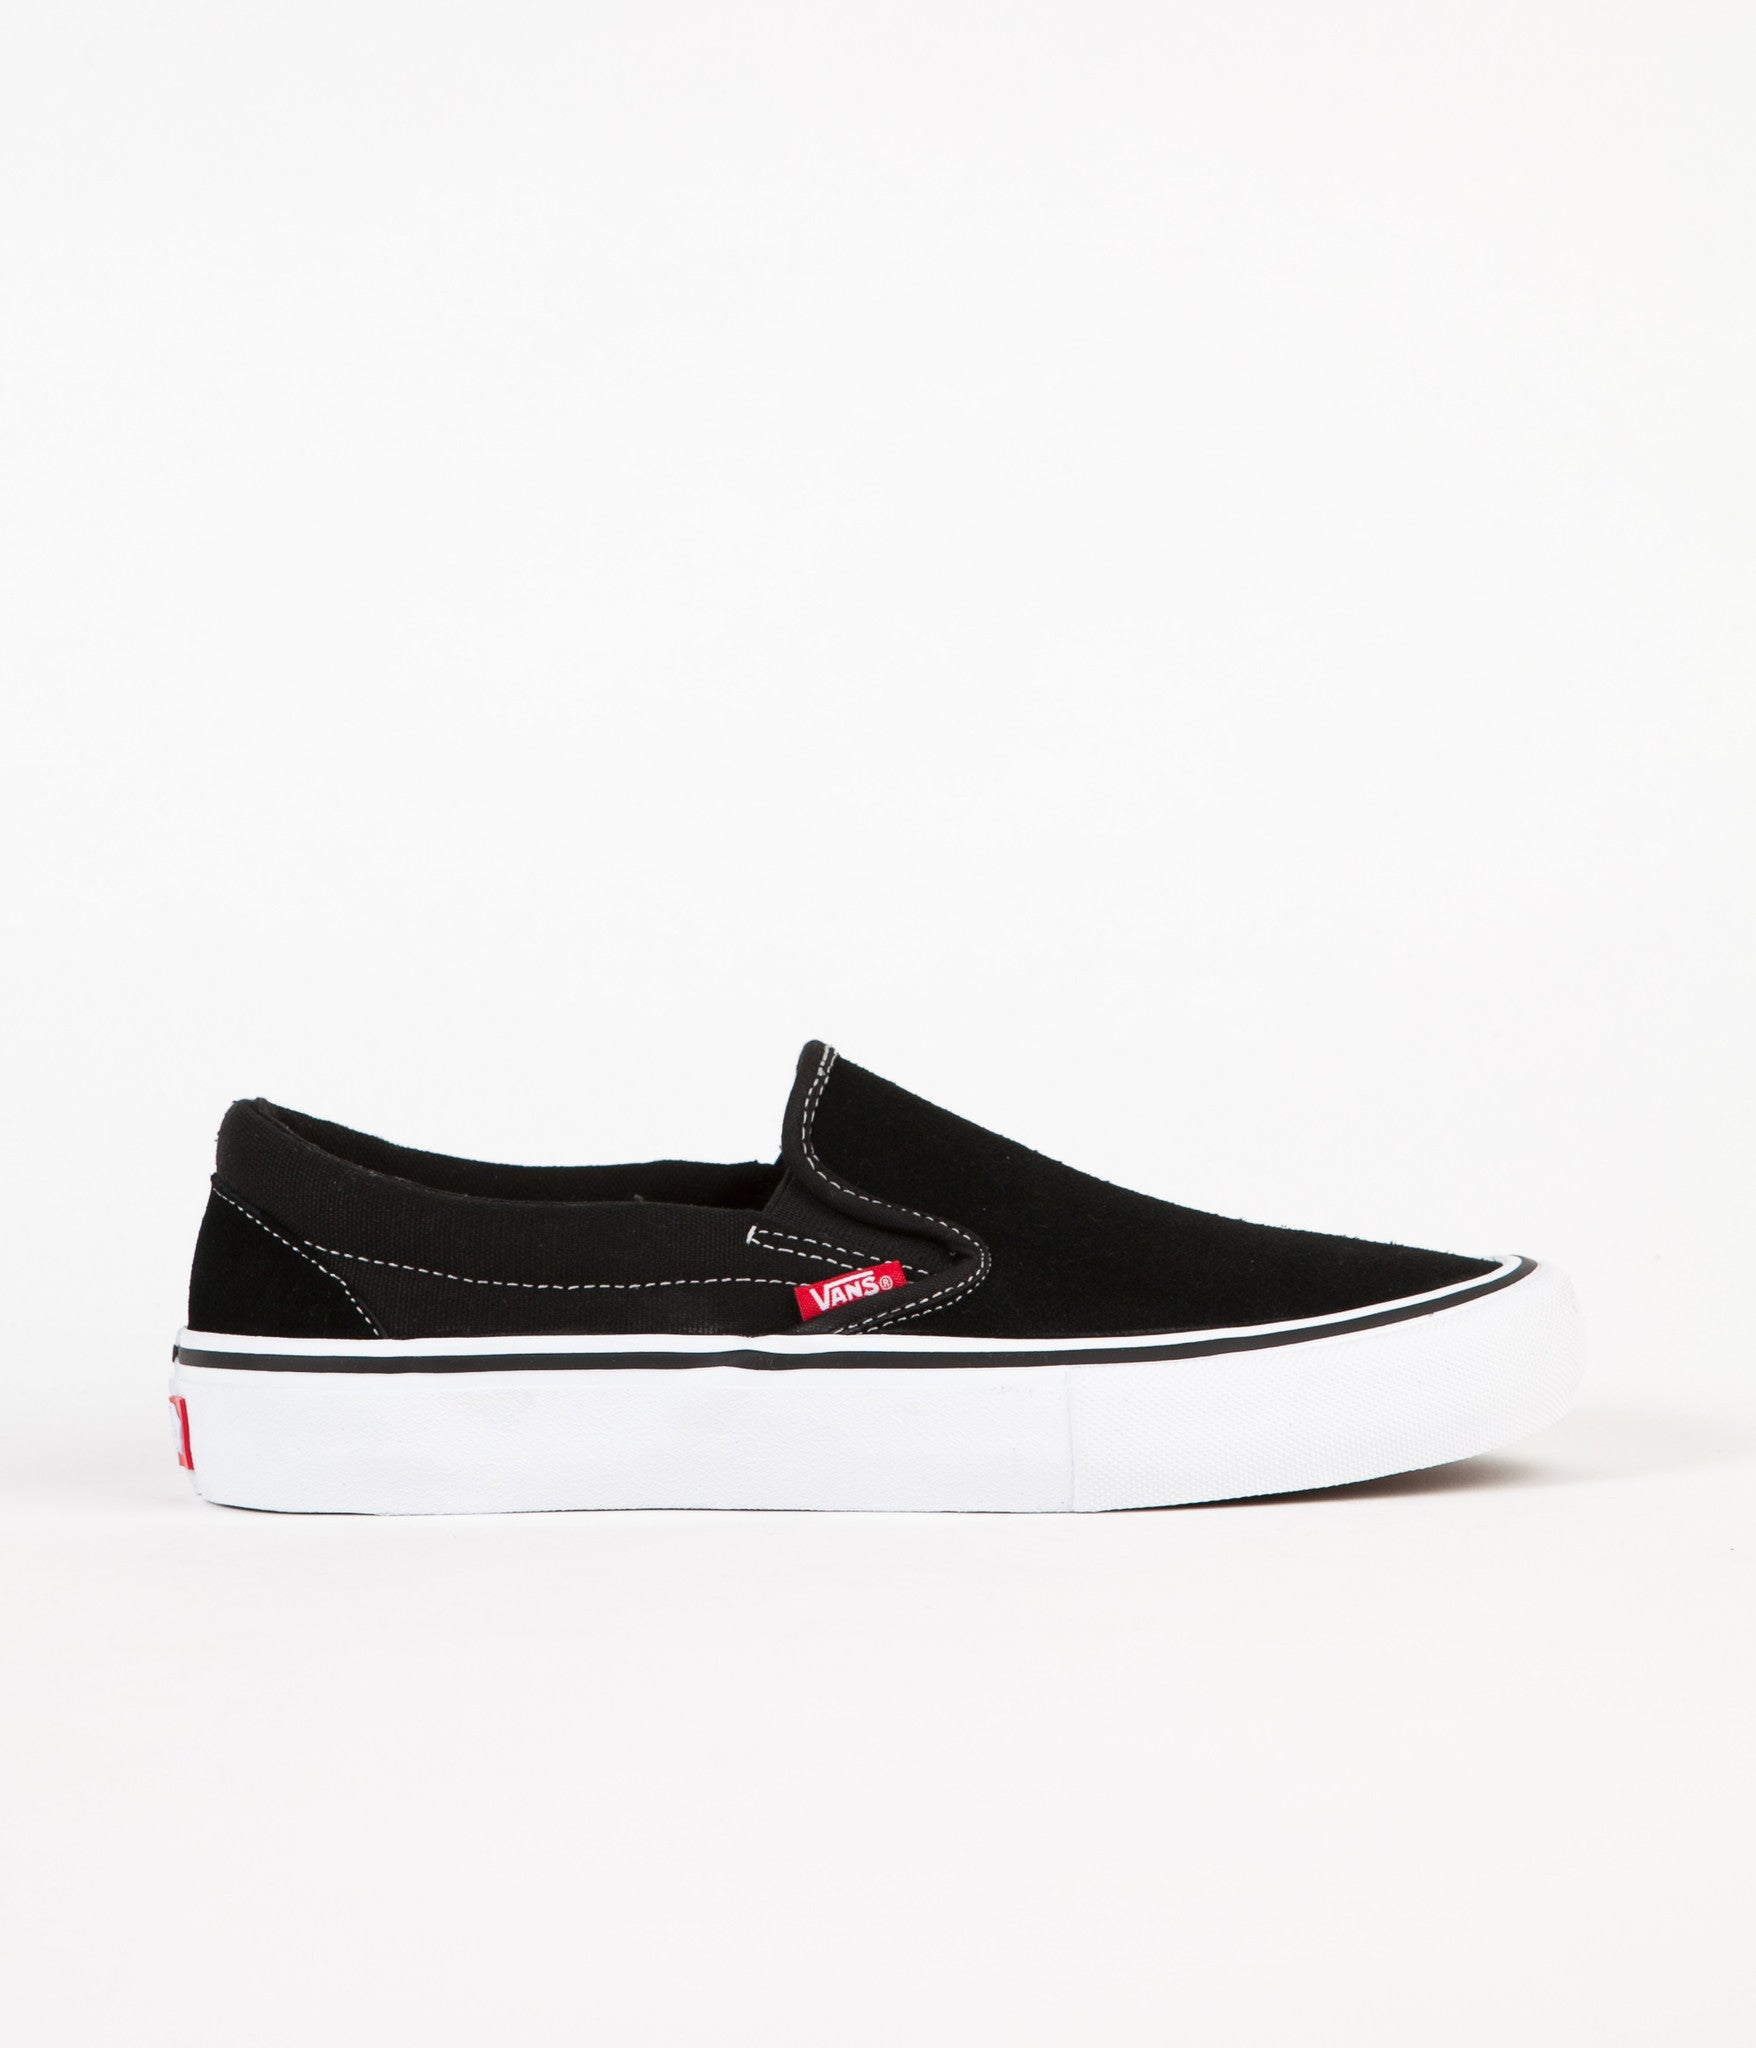 2883831056c Vans Slip On Pro Shoes - Black   White   Gum